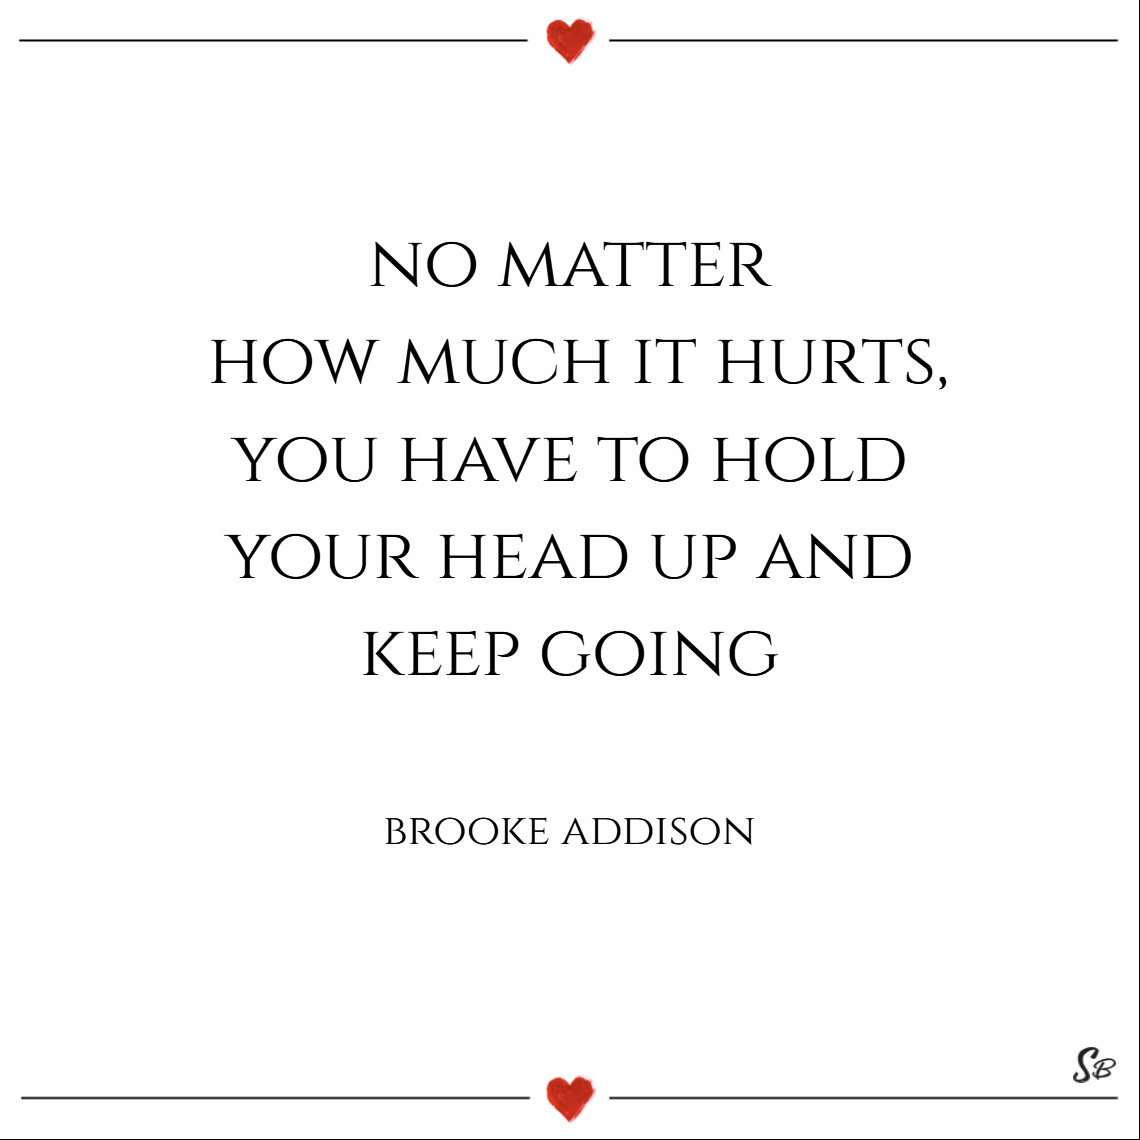 No matter how much it hurts, you have to hold your head up and keep going. – brooke addison